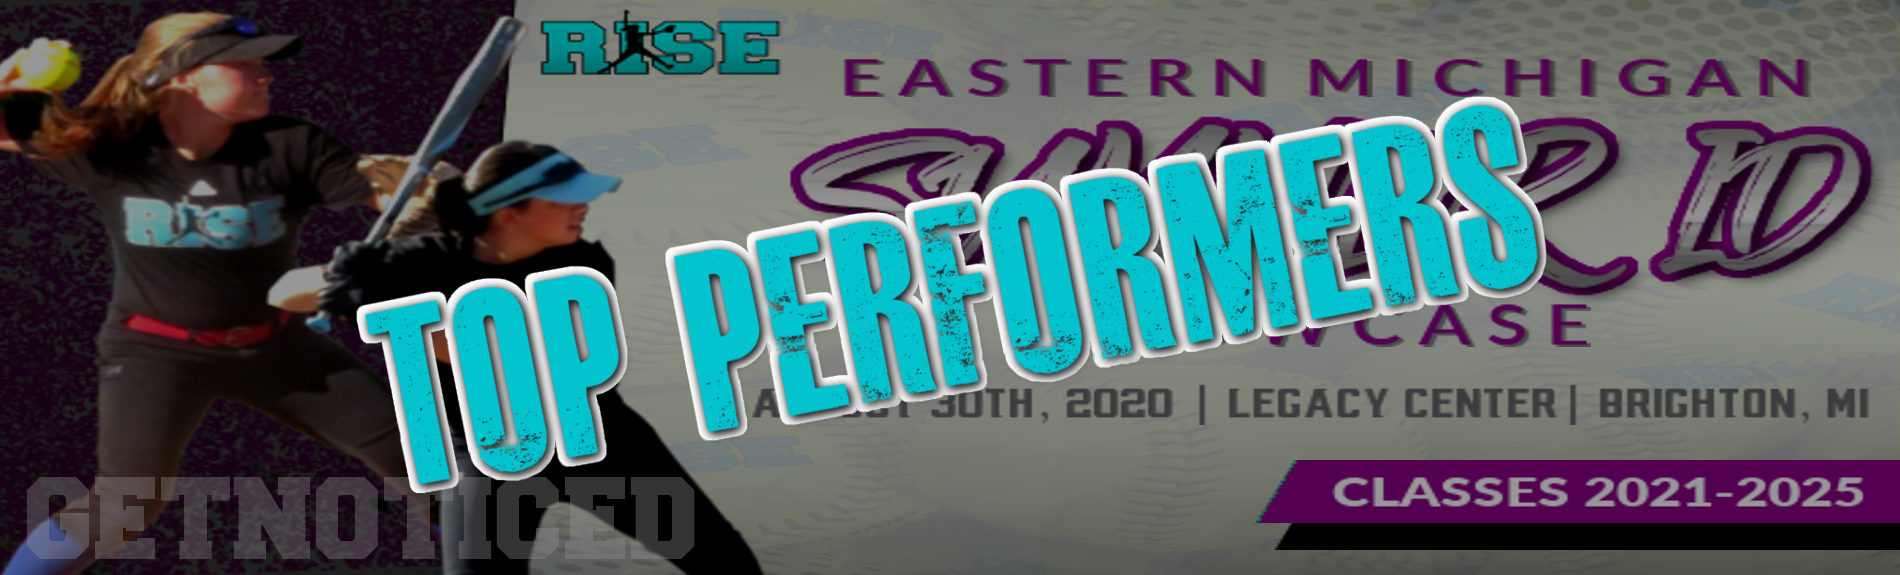 "Eastern Michigan Summer ID Showcase ""TOP PERFORMERS"""